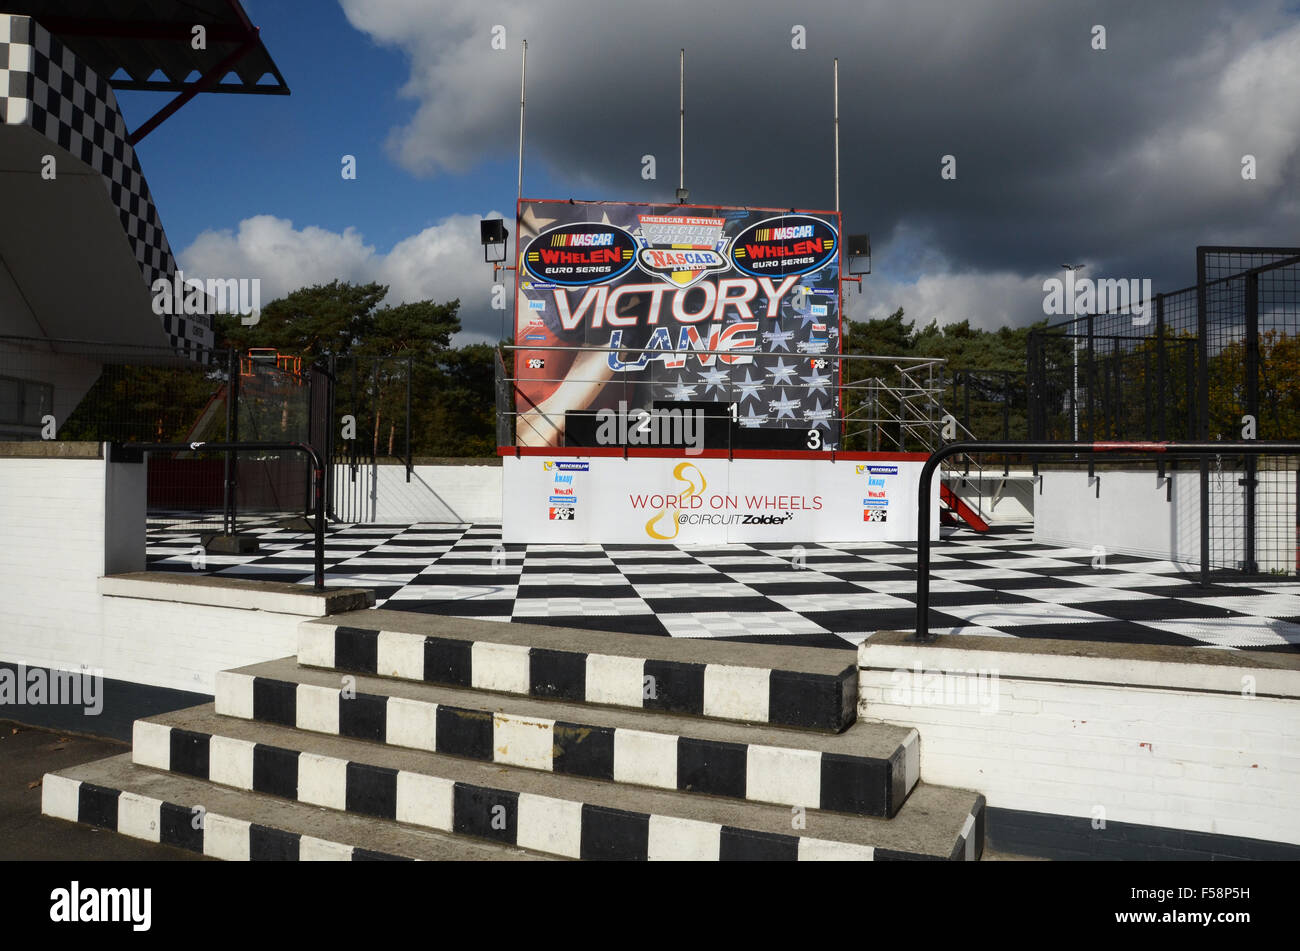 Circuito Zolder Belgica : Podium at zolder race circuit belgium stock photo  alamy